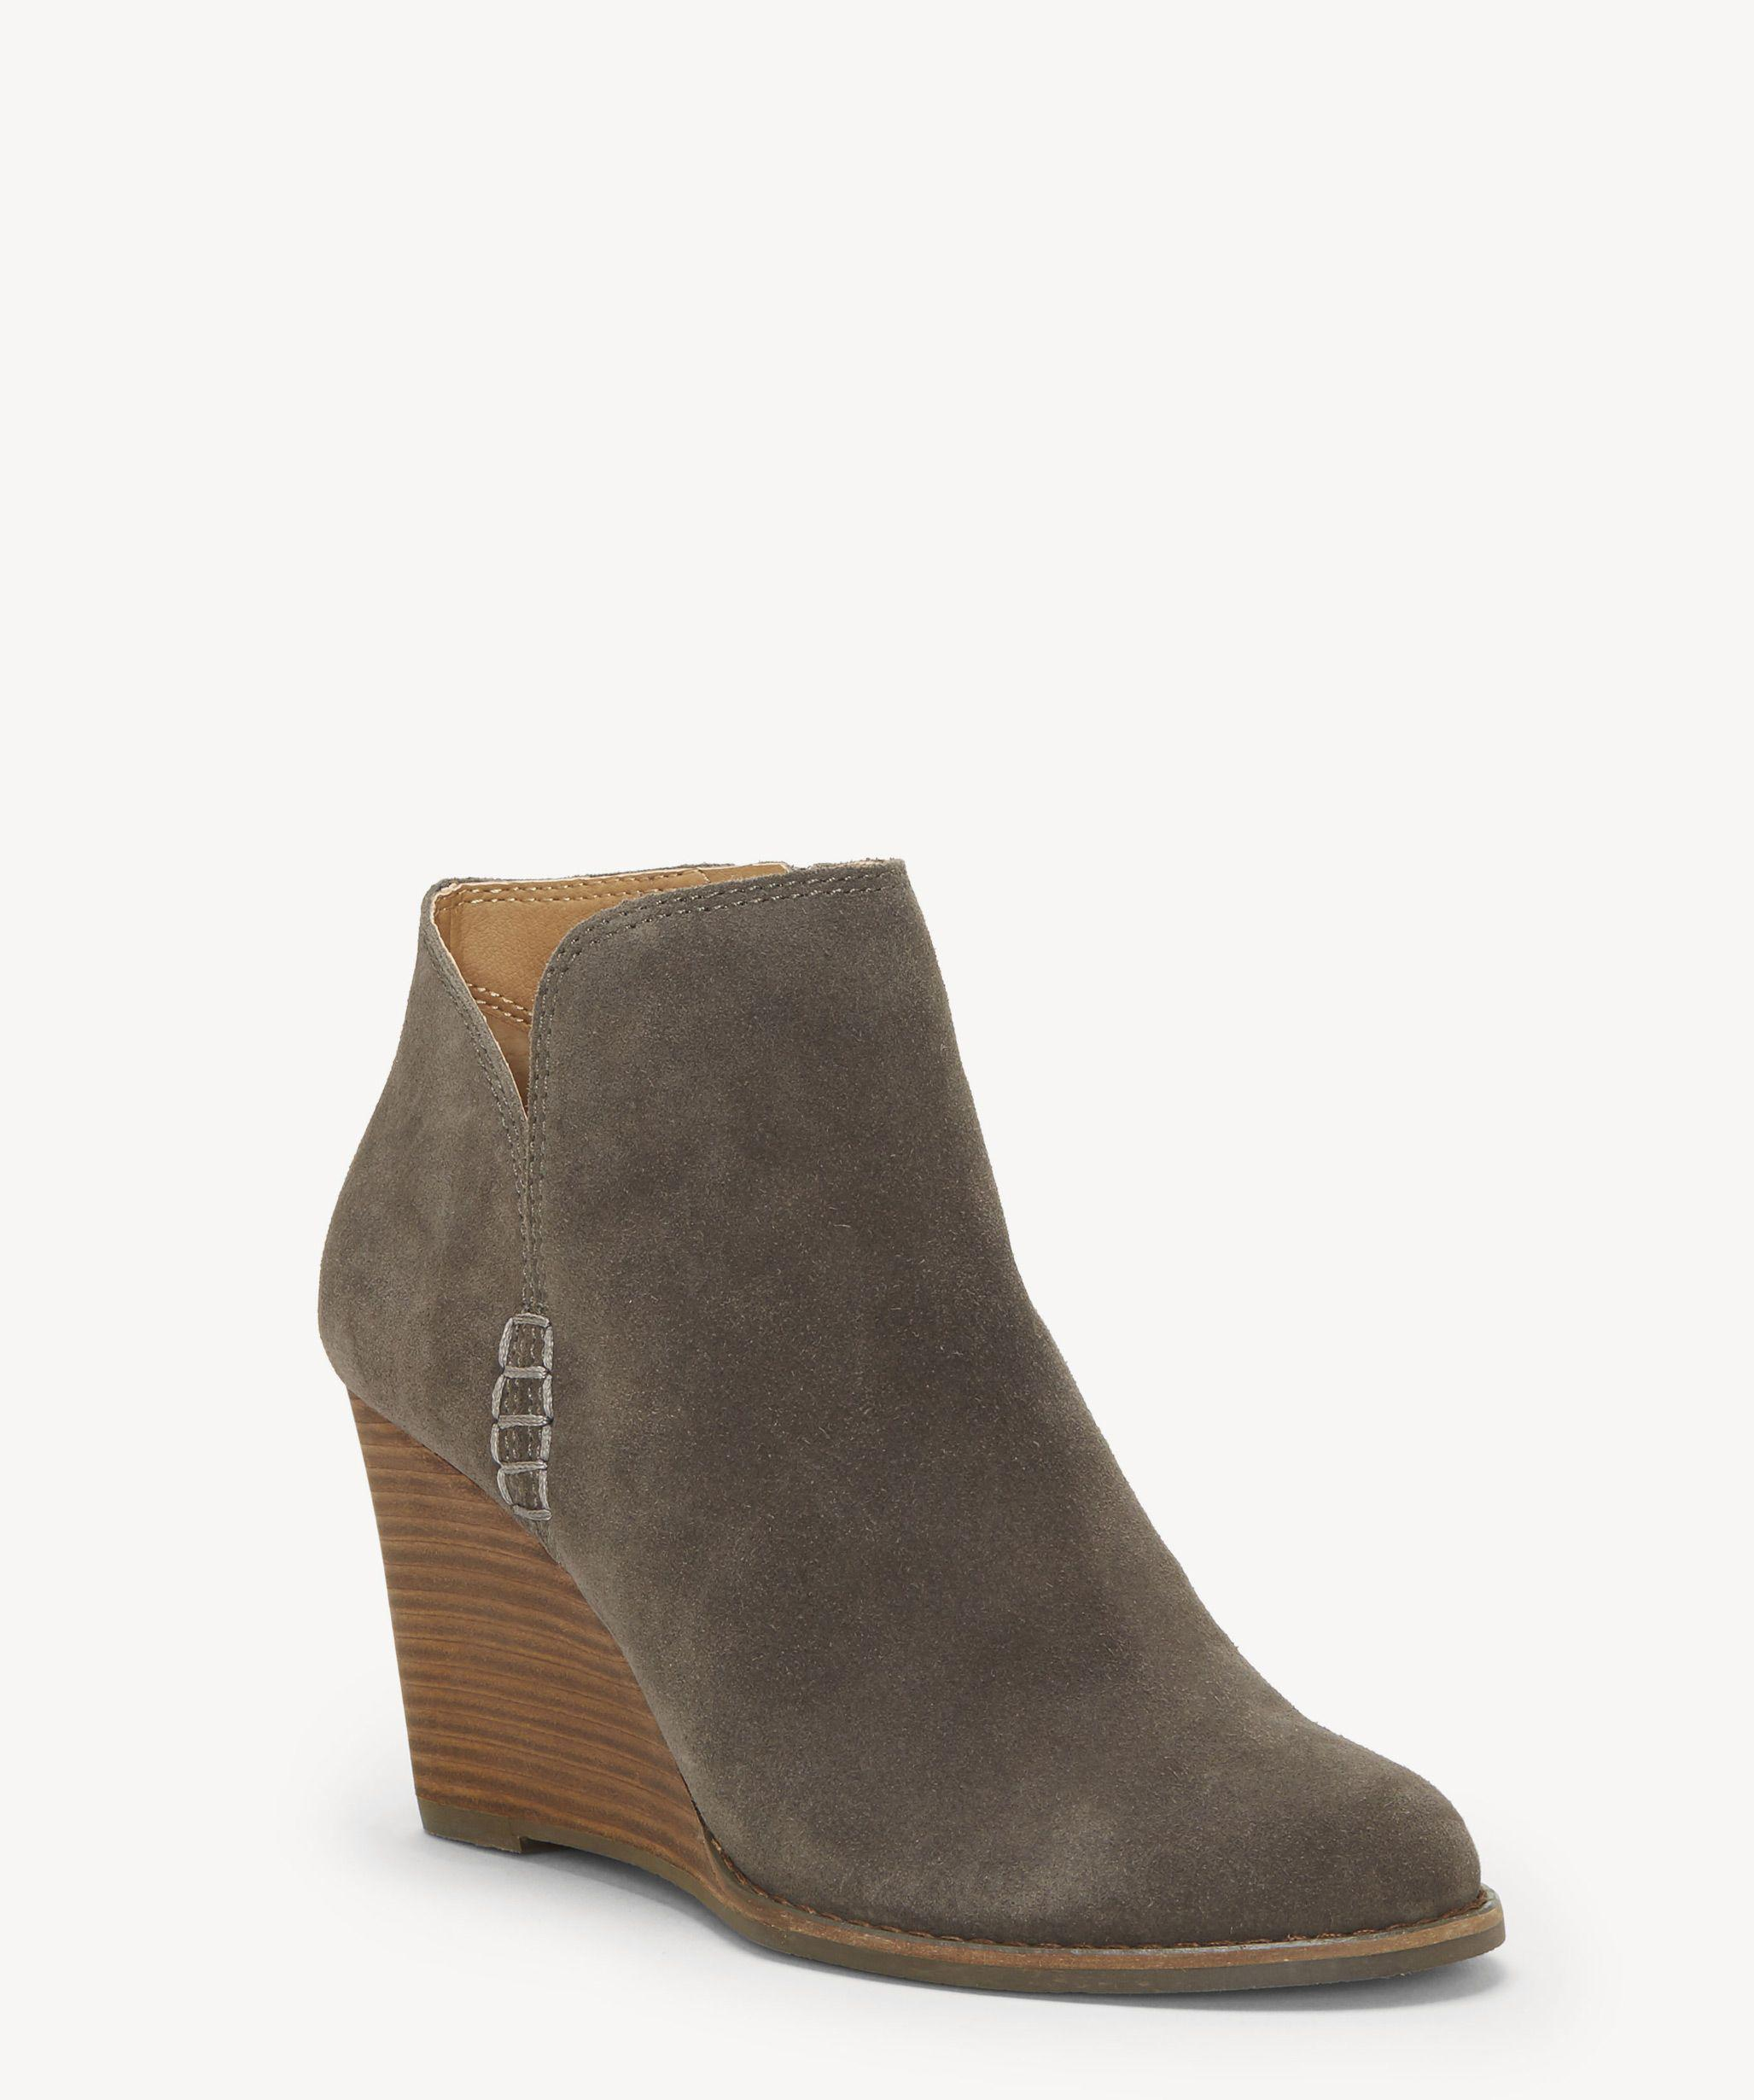 a1bd392d0cd28 Lyst - Lucky Brand Yimmie Wedge Bootie in Brown